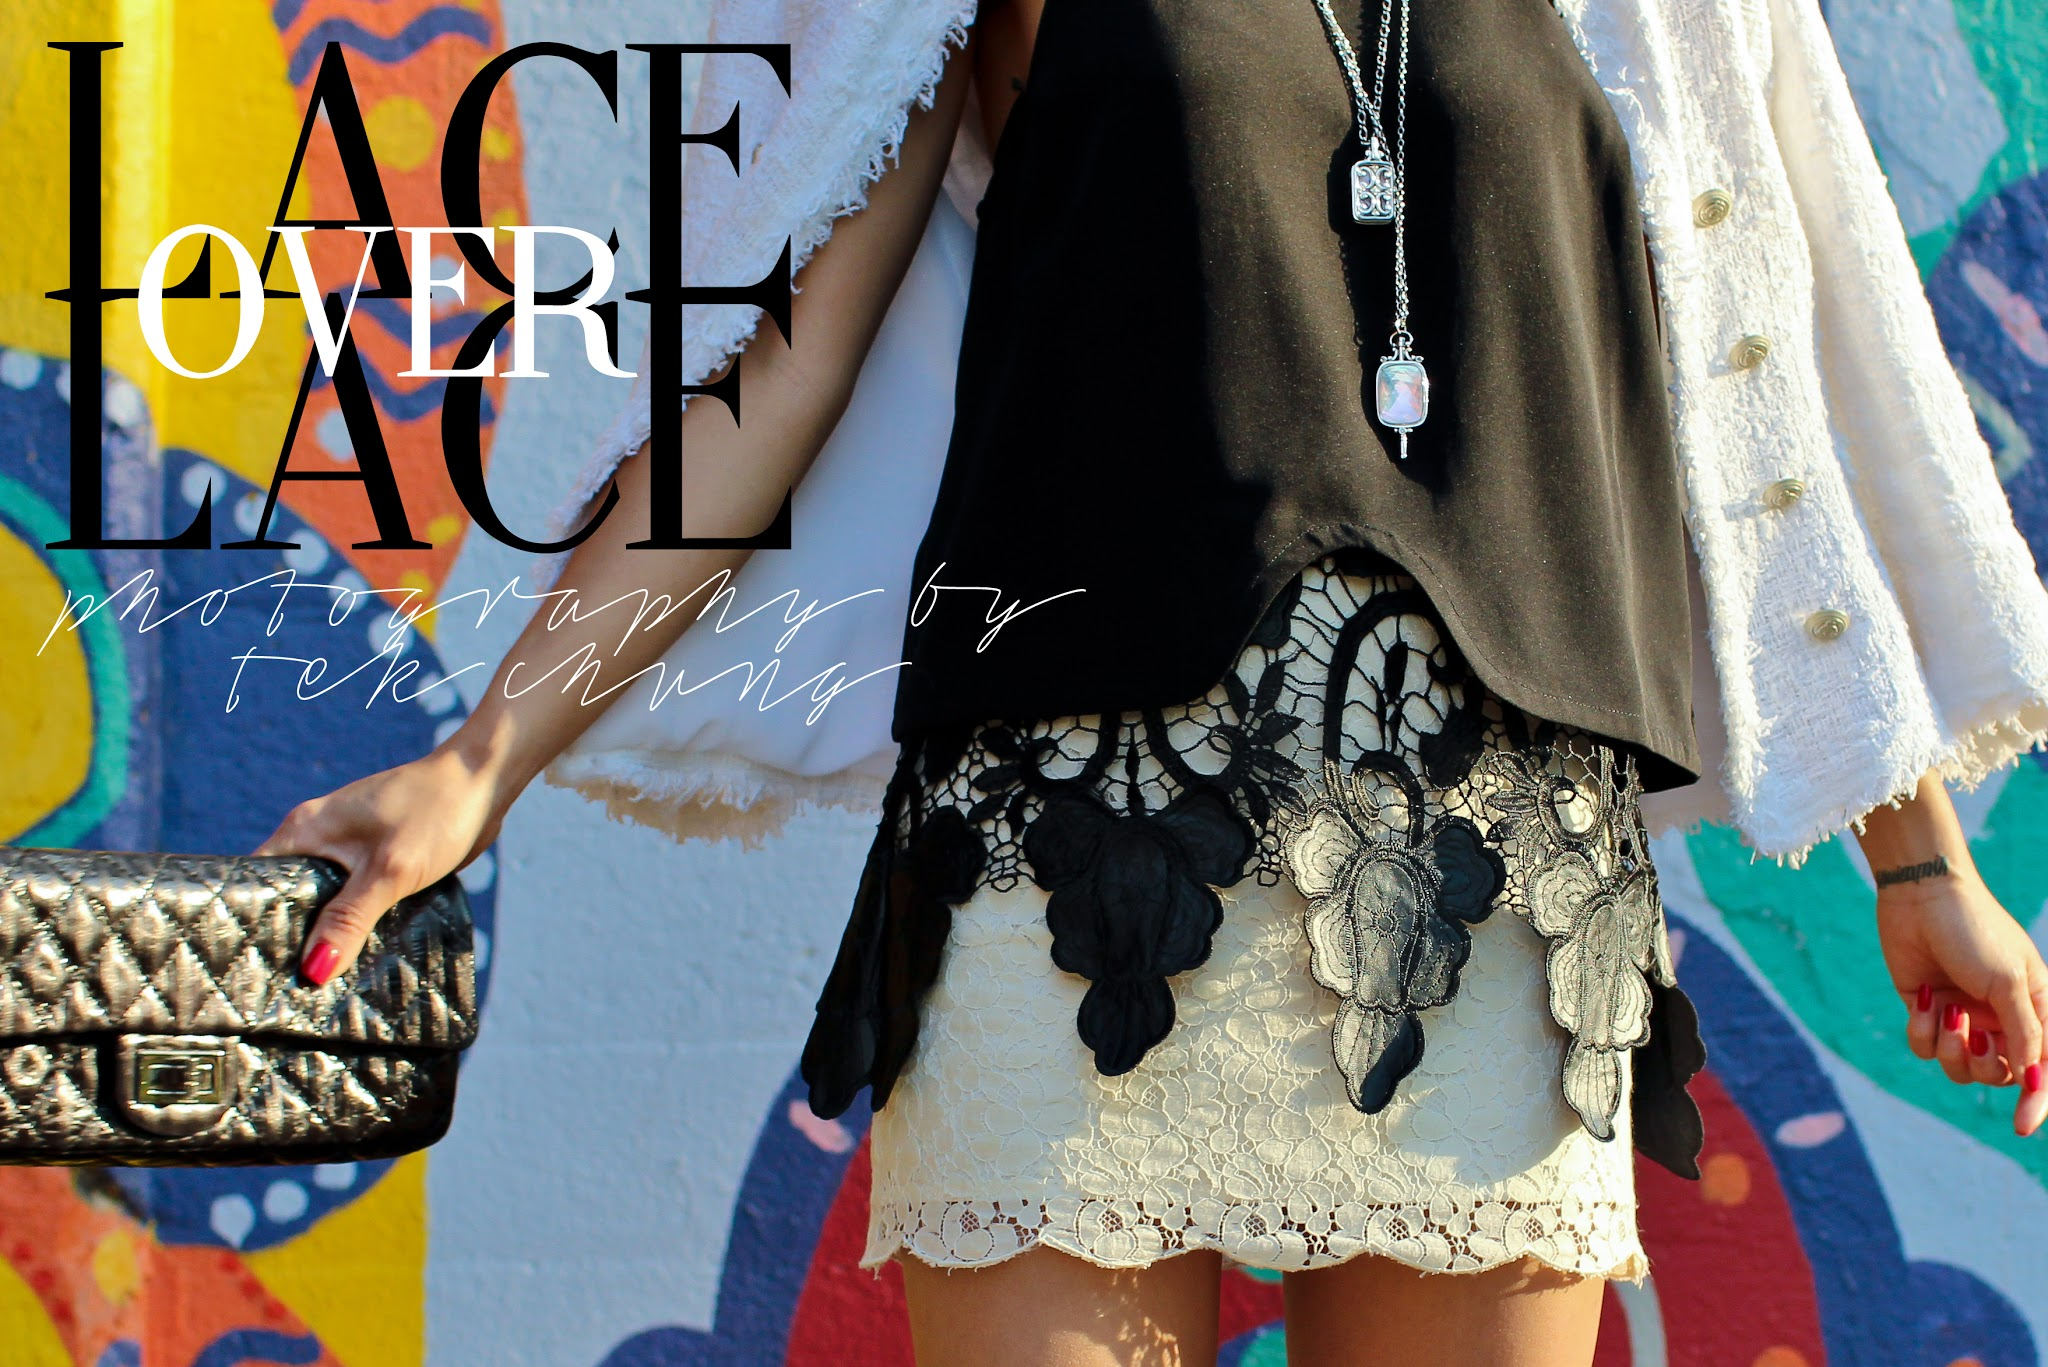 lace_over_lace-8